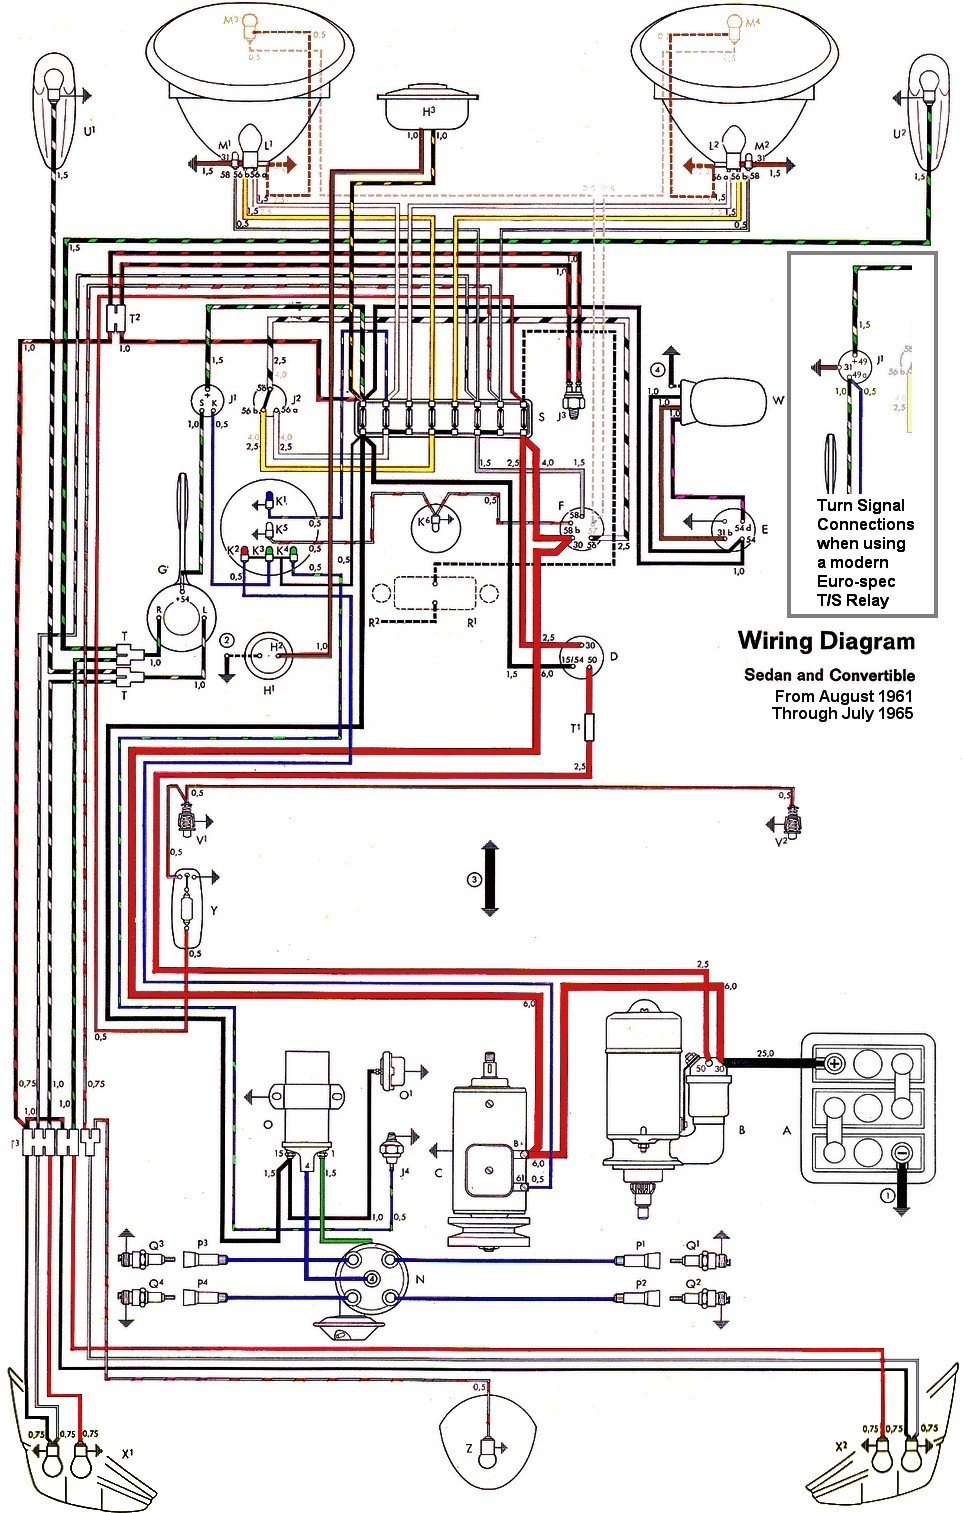 bug_62 65withinset wiring diagram vw beetle sedan and convertible 1961 1965 vw vw buggy wiring diagram at panicattacktreatment.co